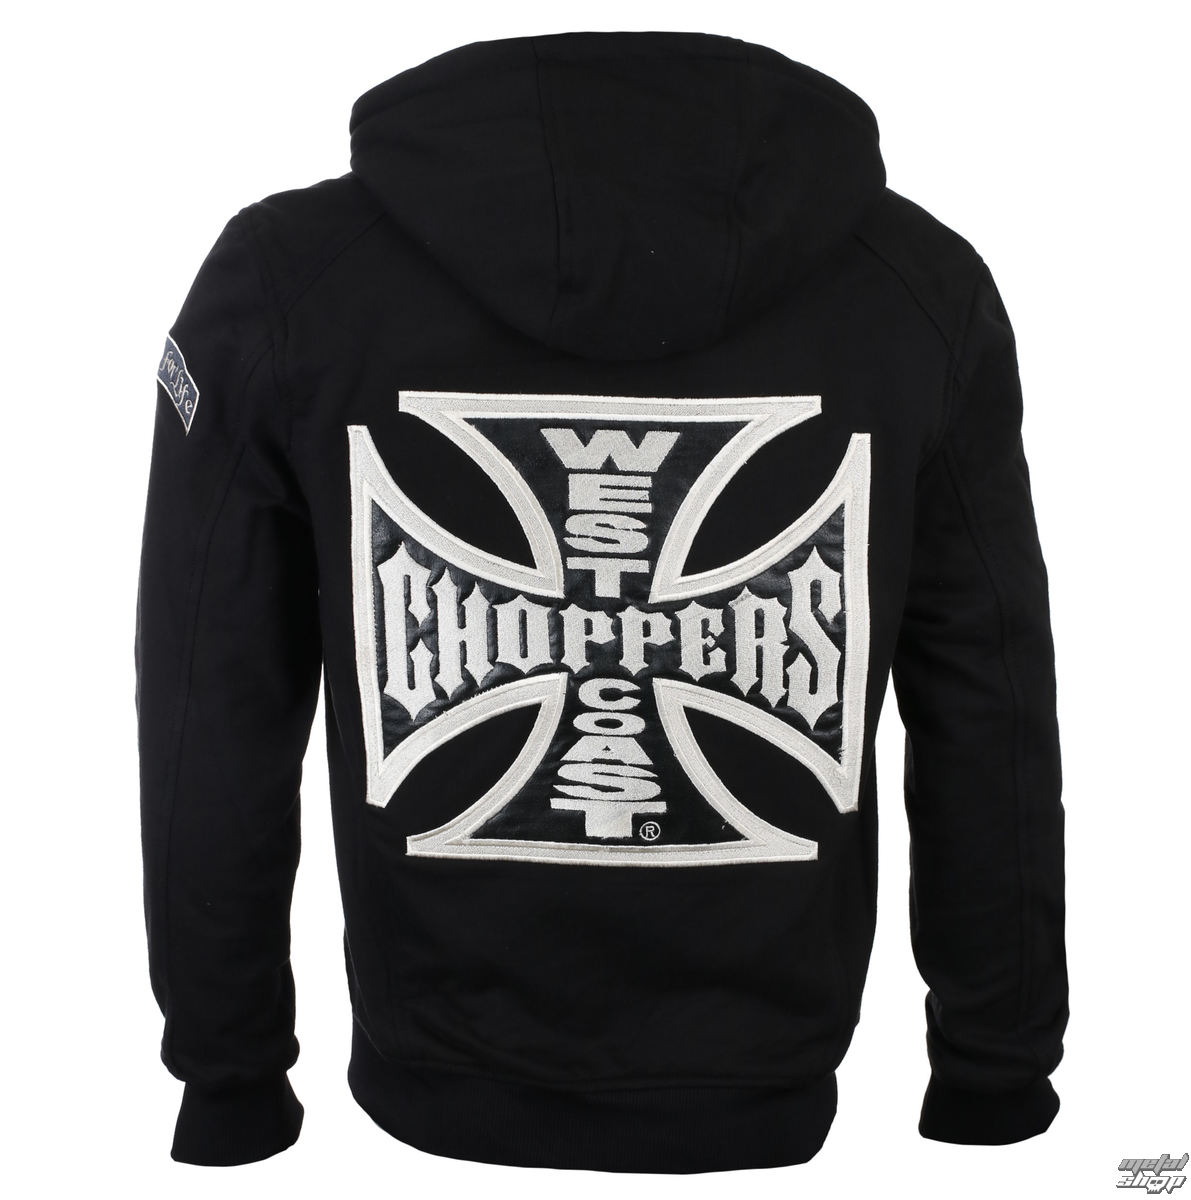 Herren Kapuzenpullover - CROSS PANEL - West Coast Choppers